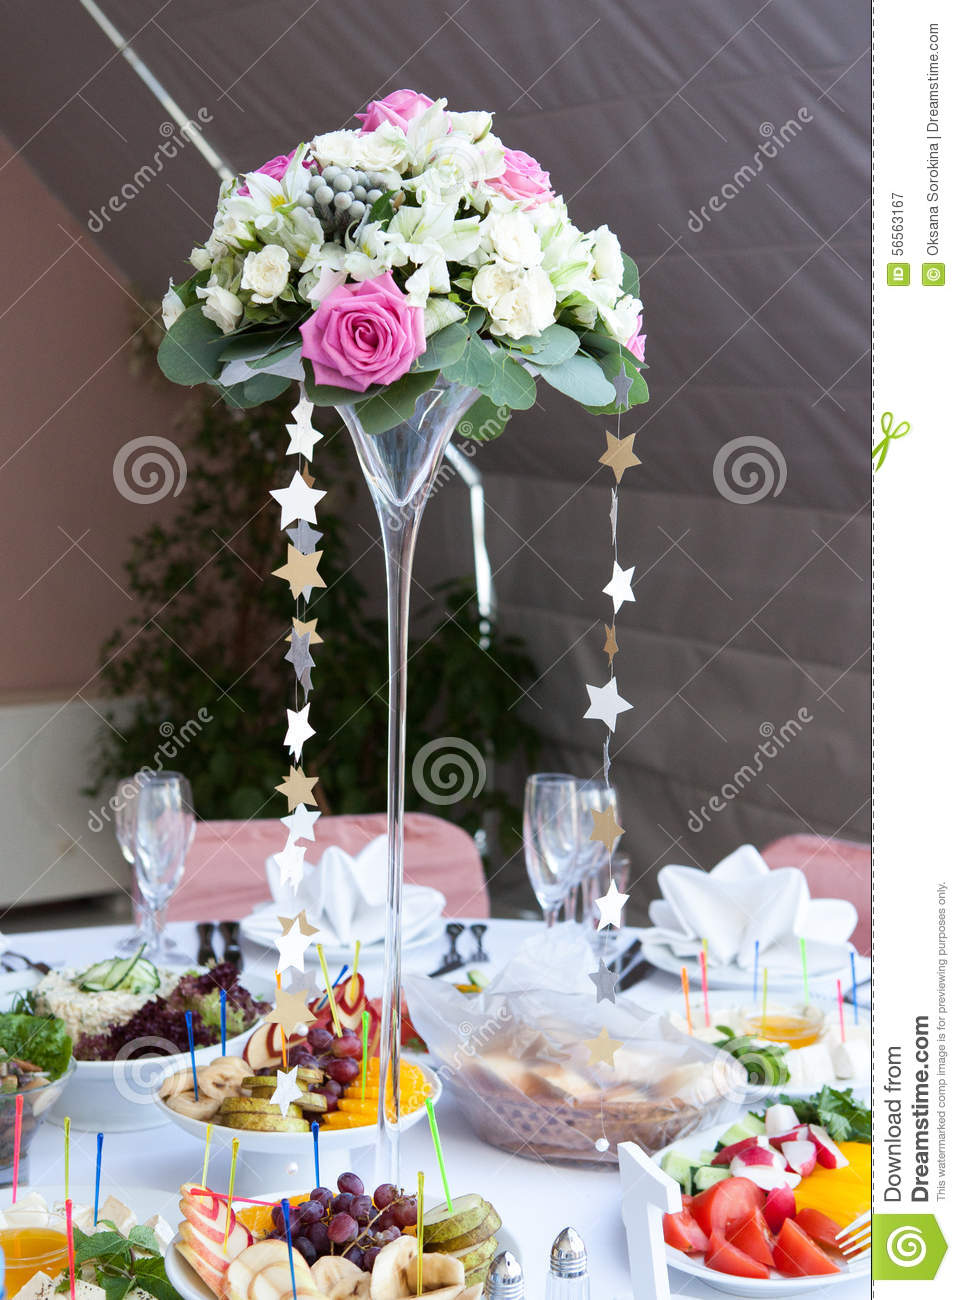 vase de fleurs la table de mariage photo stock image 56563167. Black Bedroom Furniture Sets. Home Design Ideas